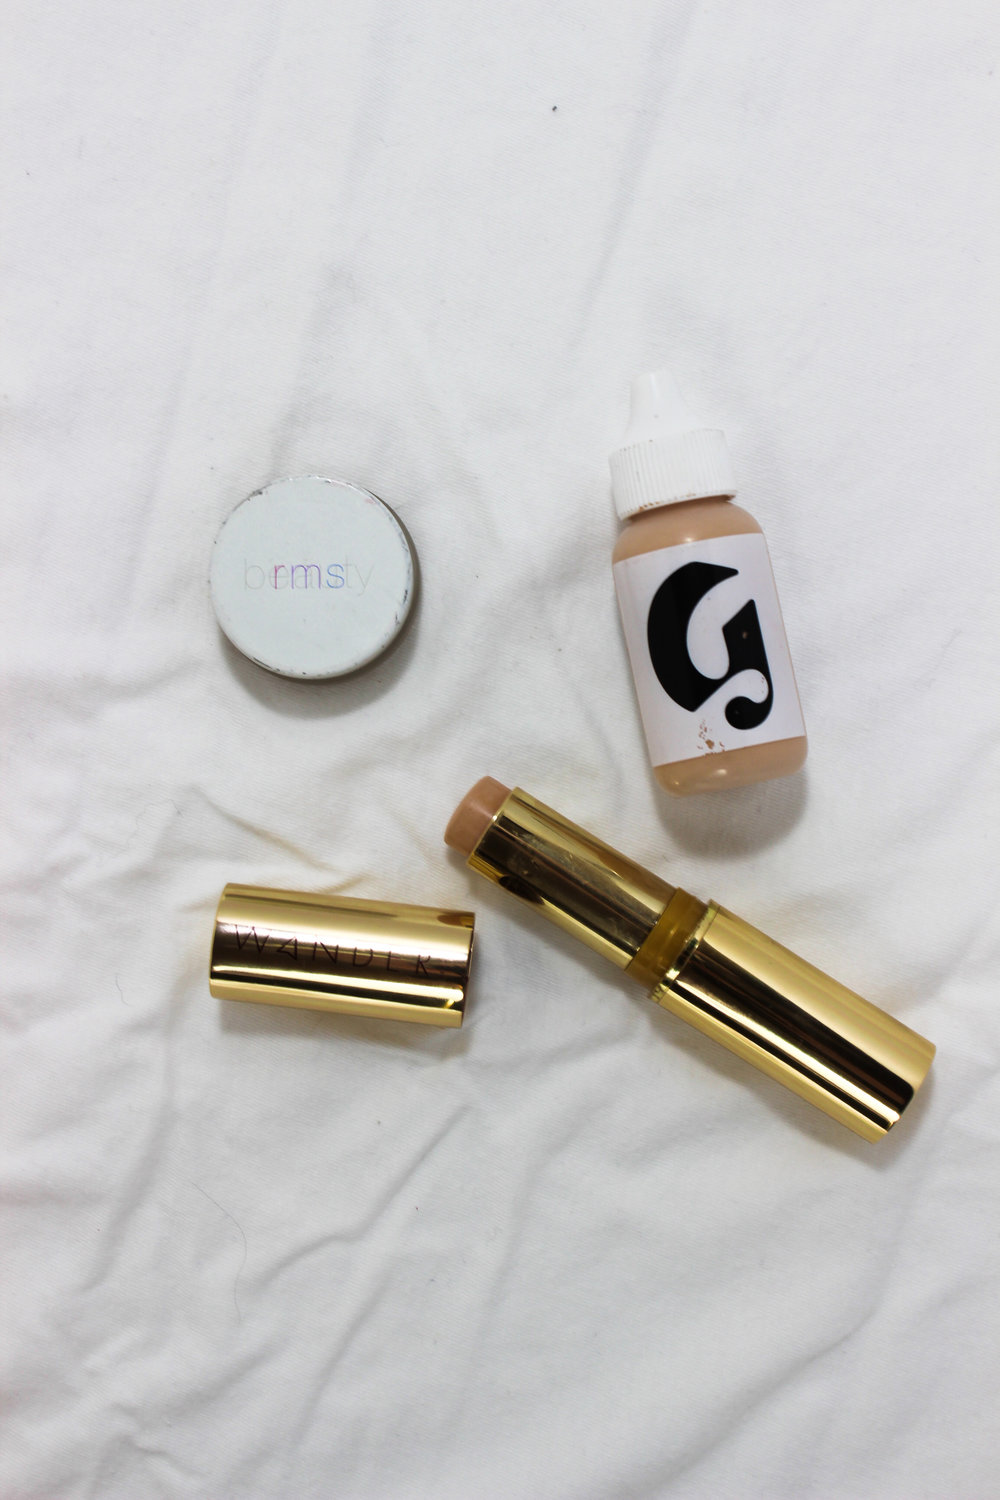 Glossier Skin Tint, Wander Beauty Flash Focus Foundation Stick